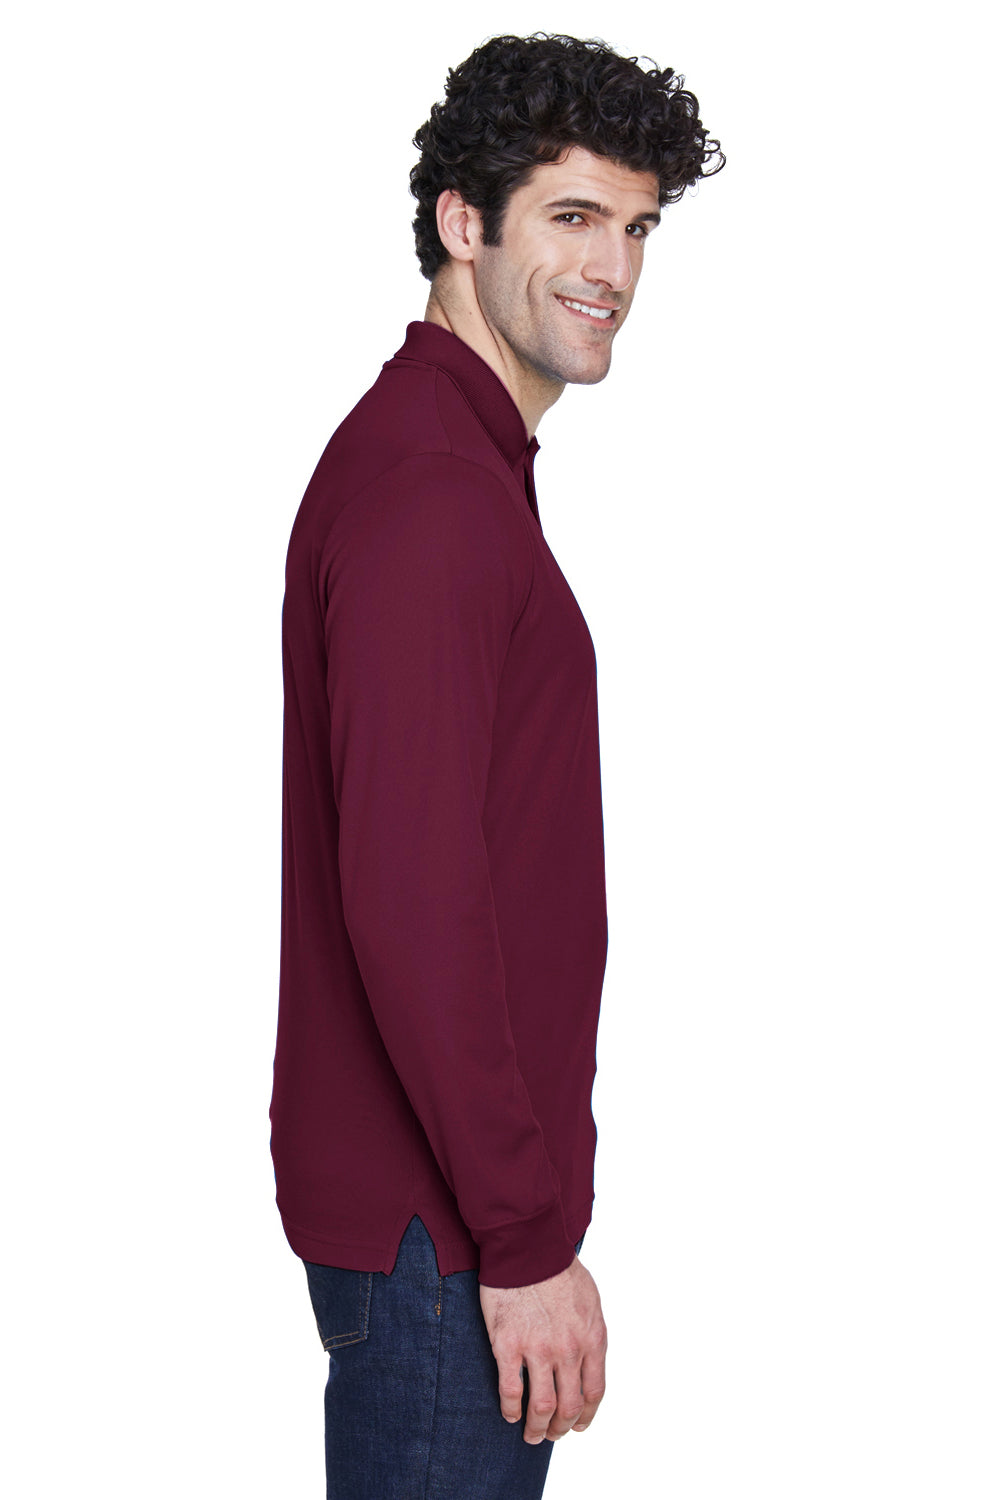 Core 365 88192 Mens Pinnacle Performance Moisture Wicking Long Sleeve Polo Shirt Burgundy Side